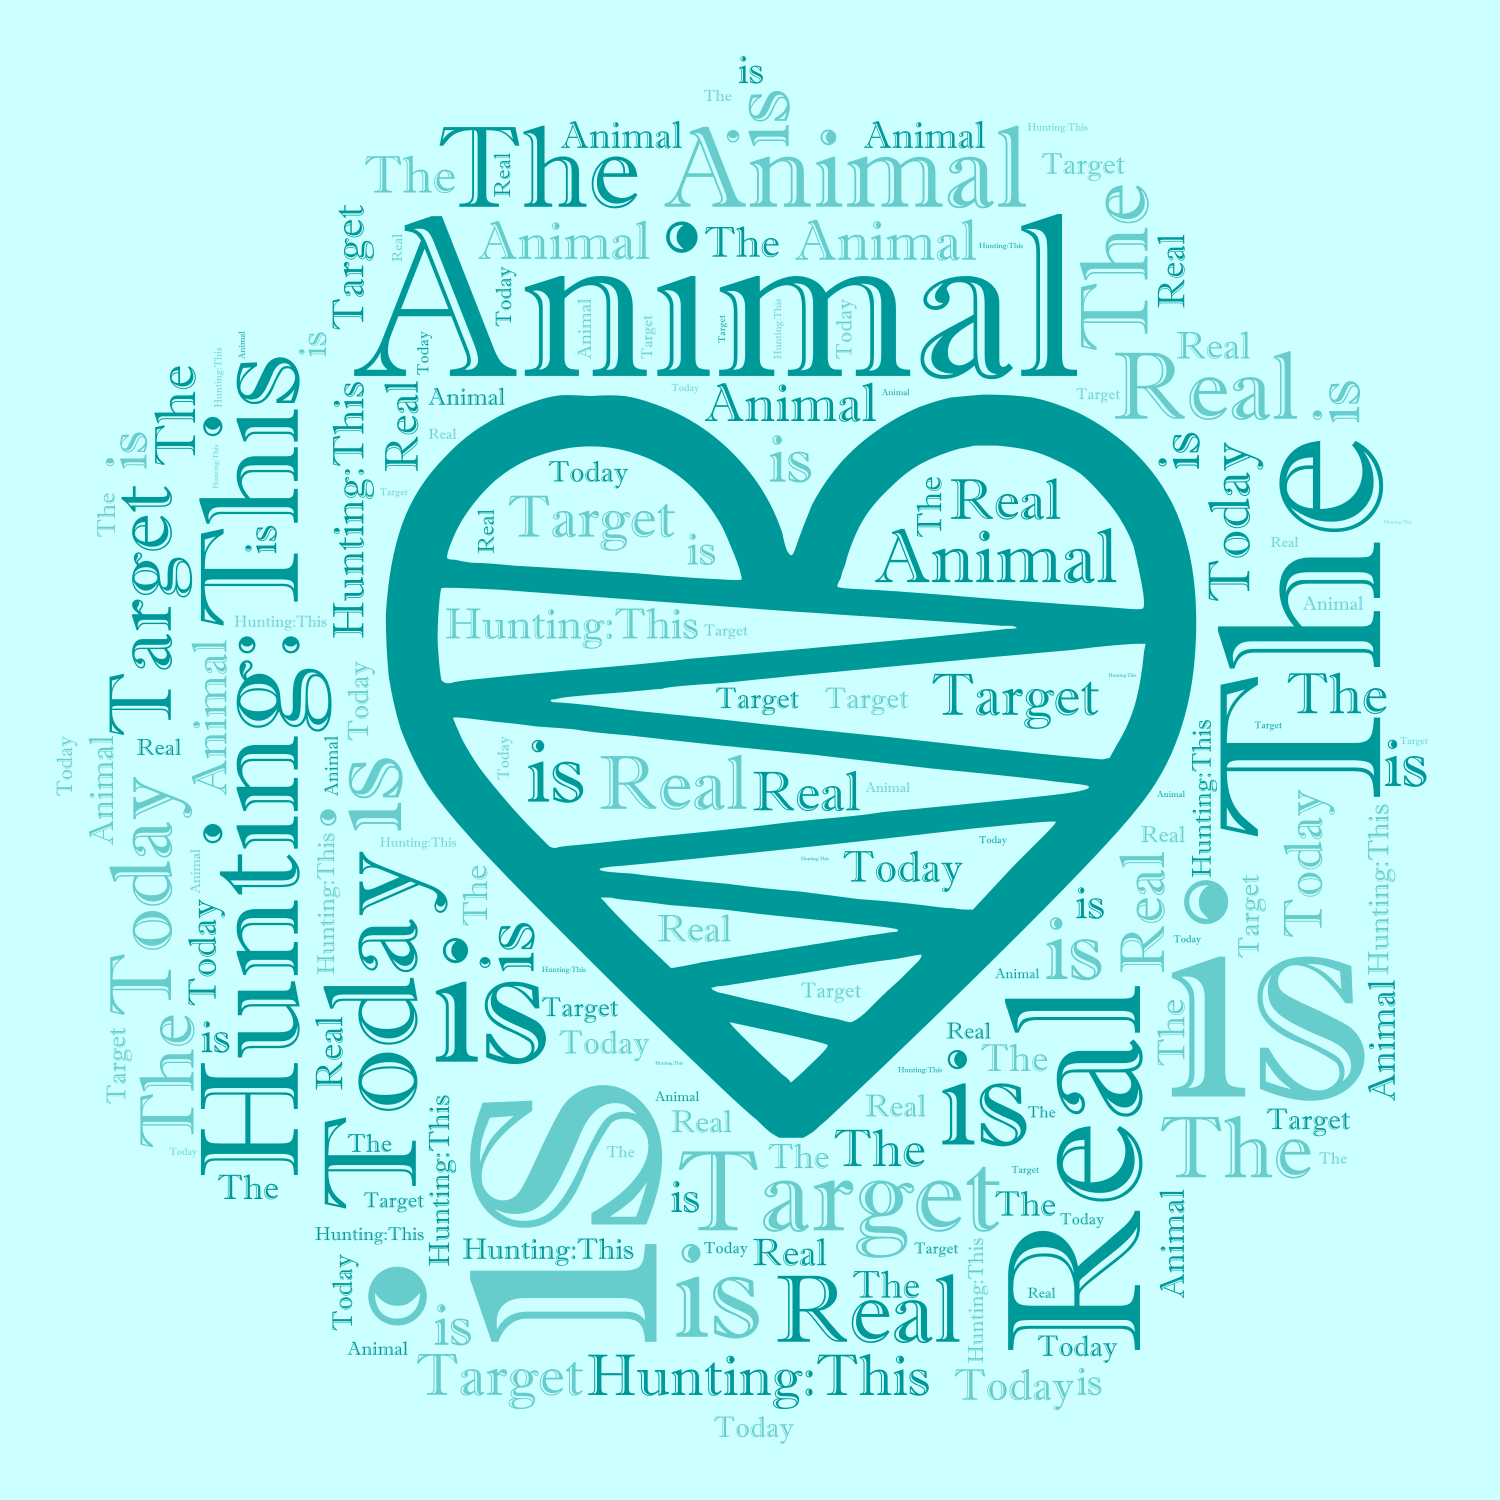 Animal Hunting:This is The Real Target Today